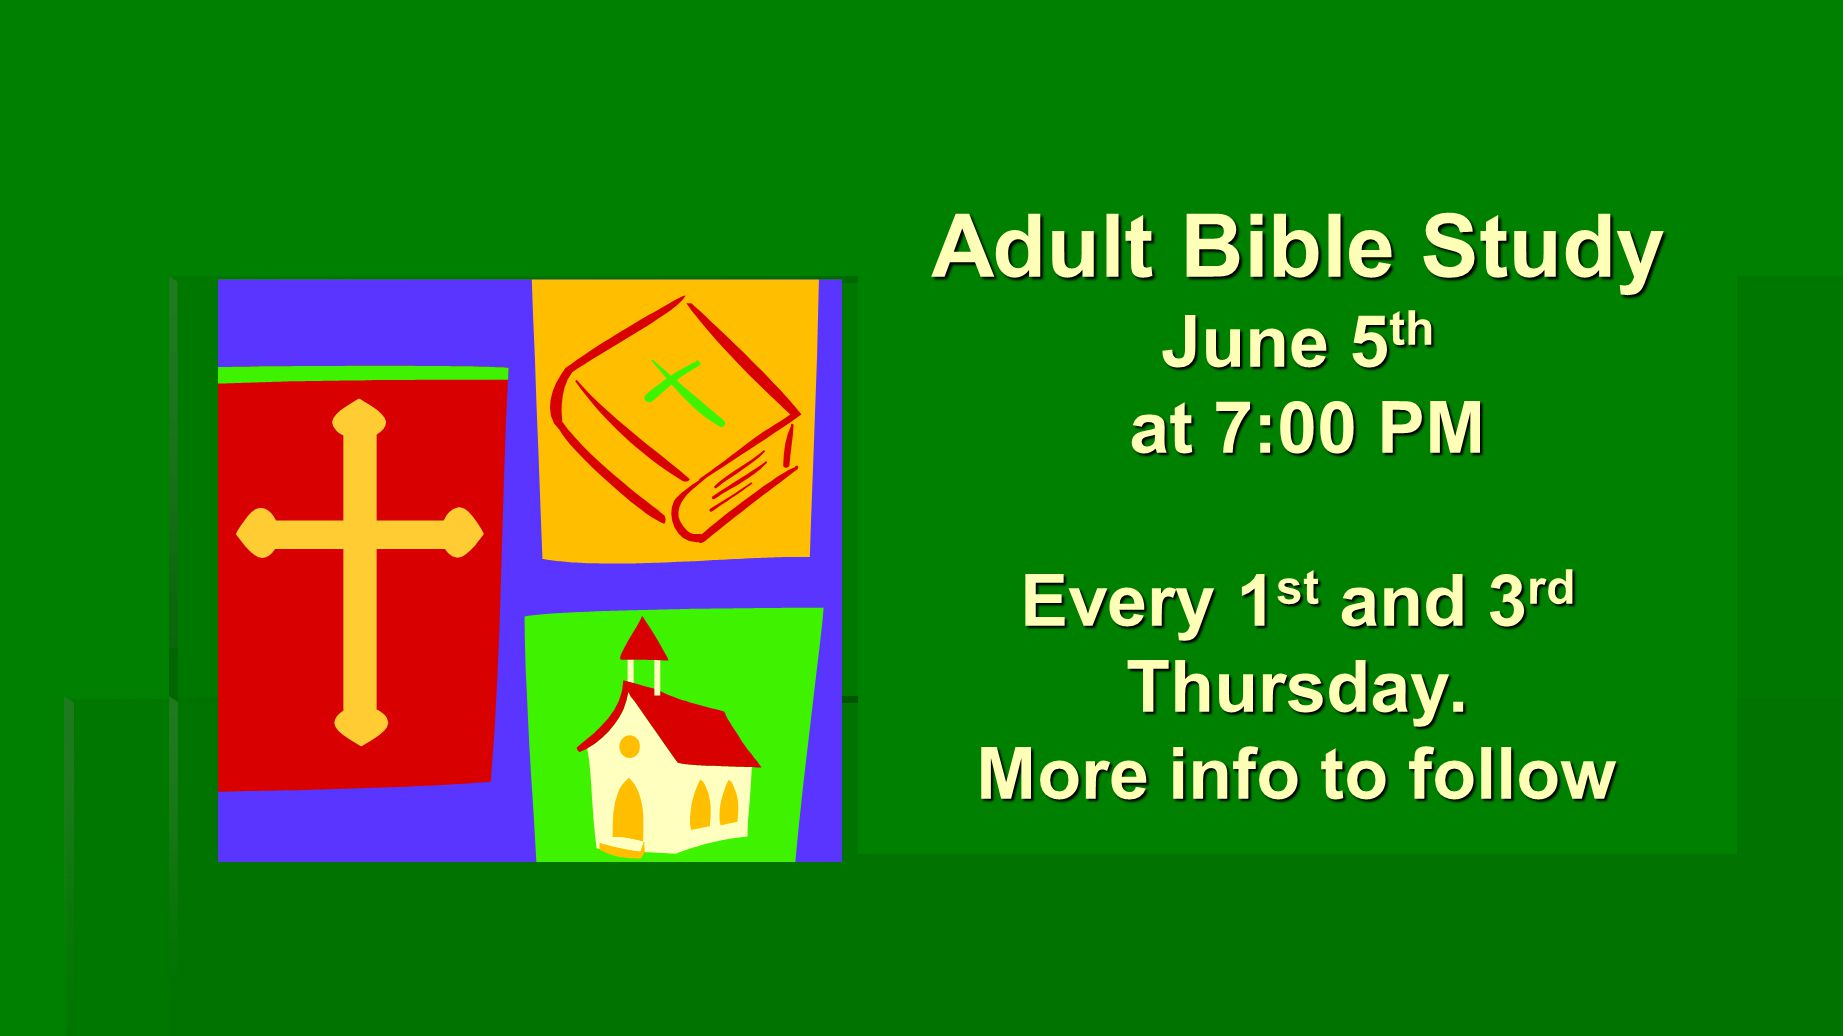 Adult Bible Study June 5 th at 7:00 PM Every 1 st and 3 rd Thursday. More info to follow